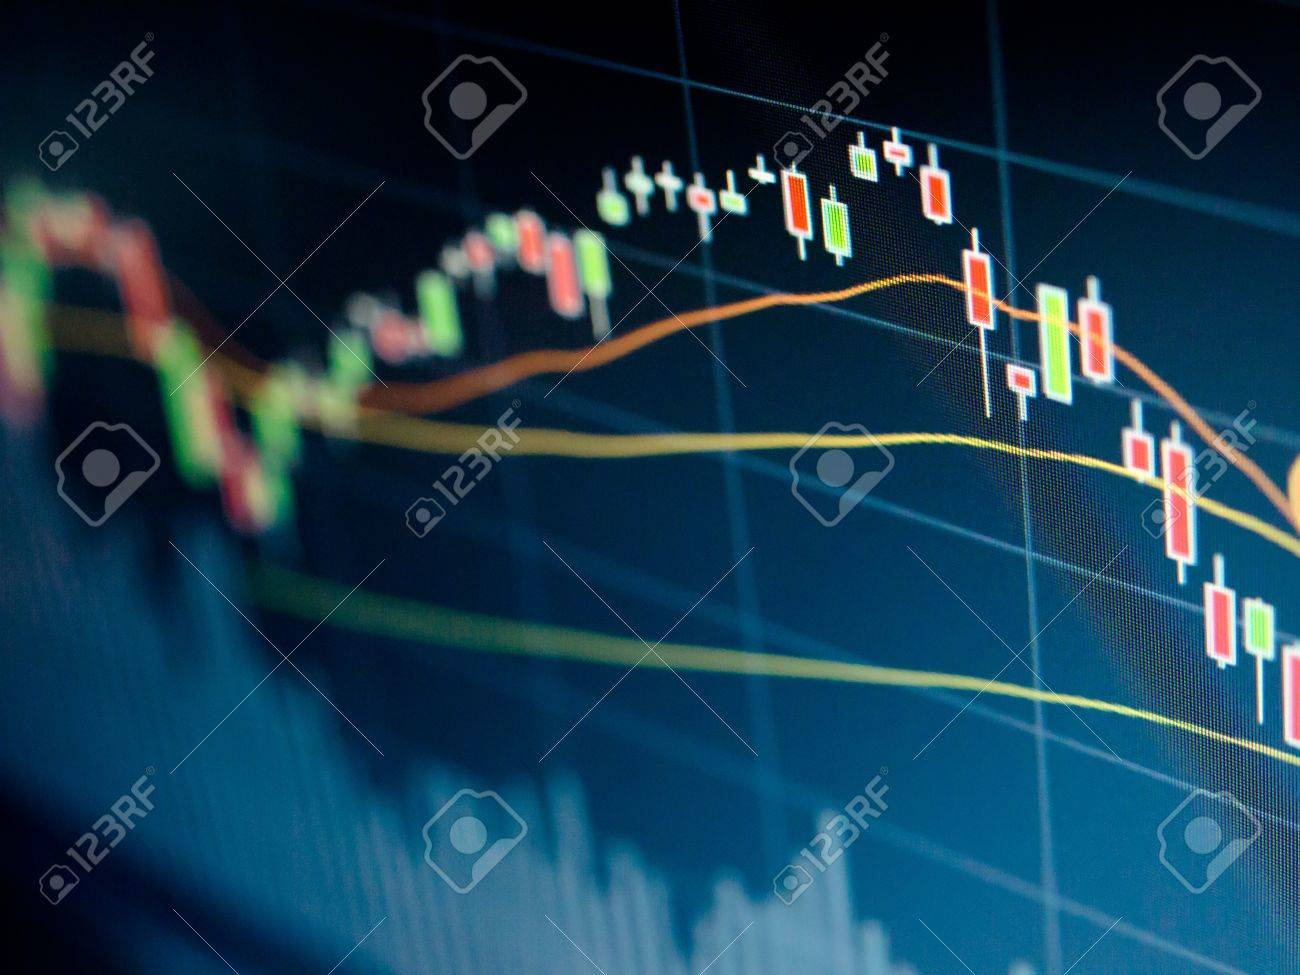 Stock Market Chart on led screen Stock Photo - 20459537